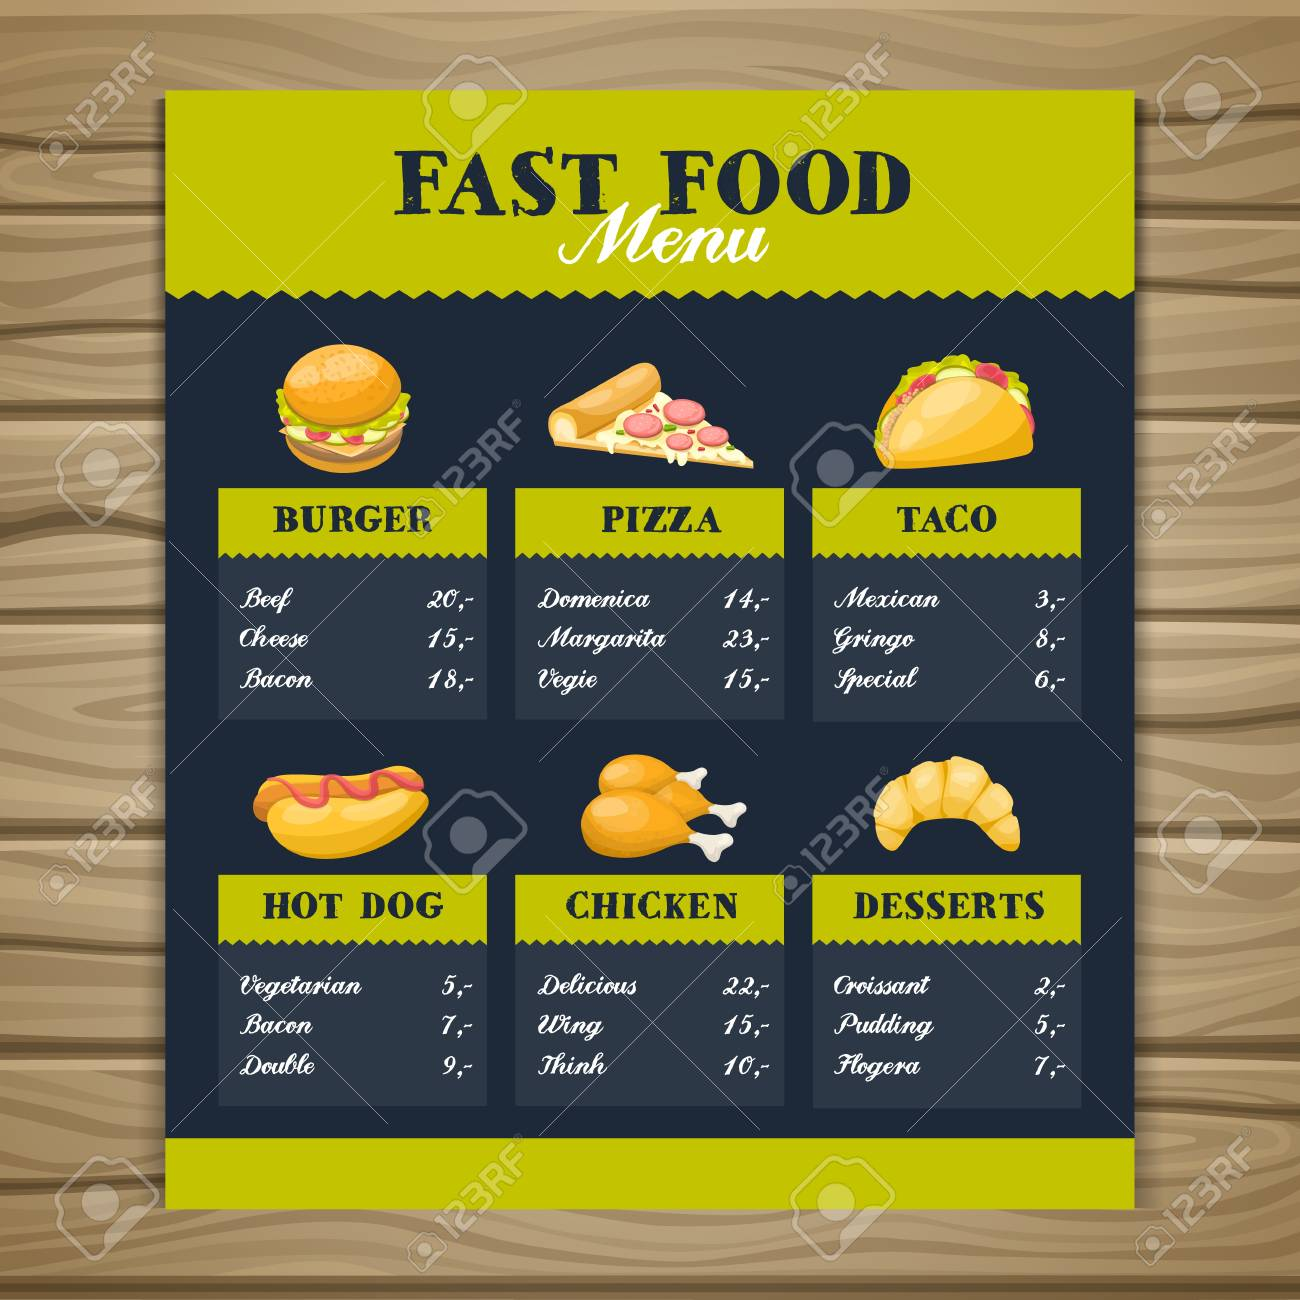 Fast Food Restaurant Menu Template With Burger Pizza Taco Hot Royalty Free Cliparts Vectors And Stock Illustration Image 113457578